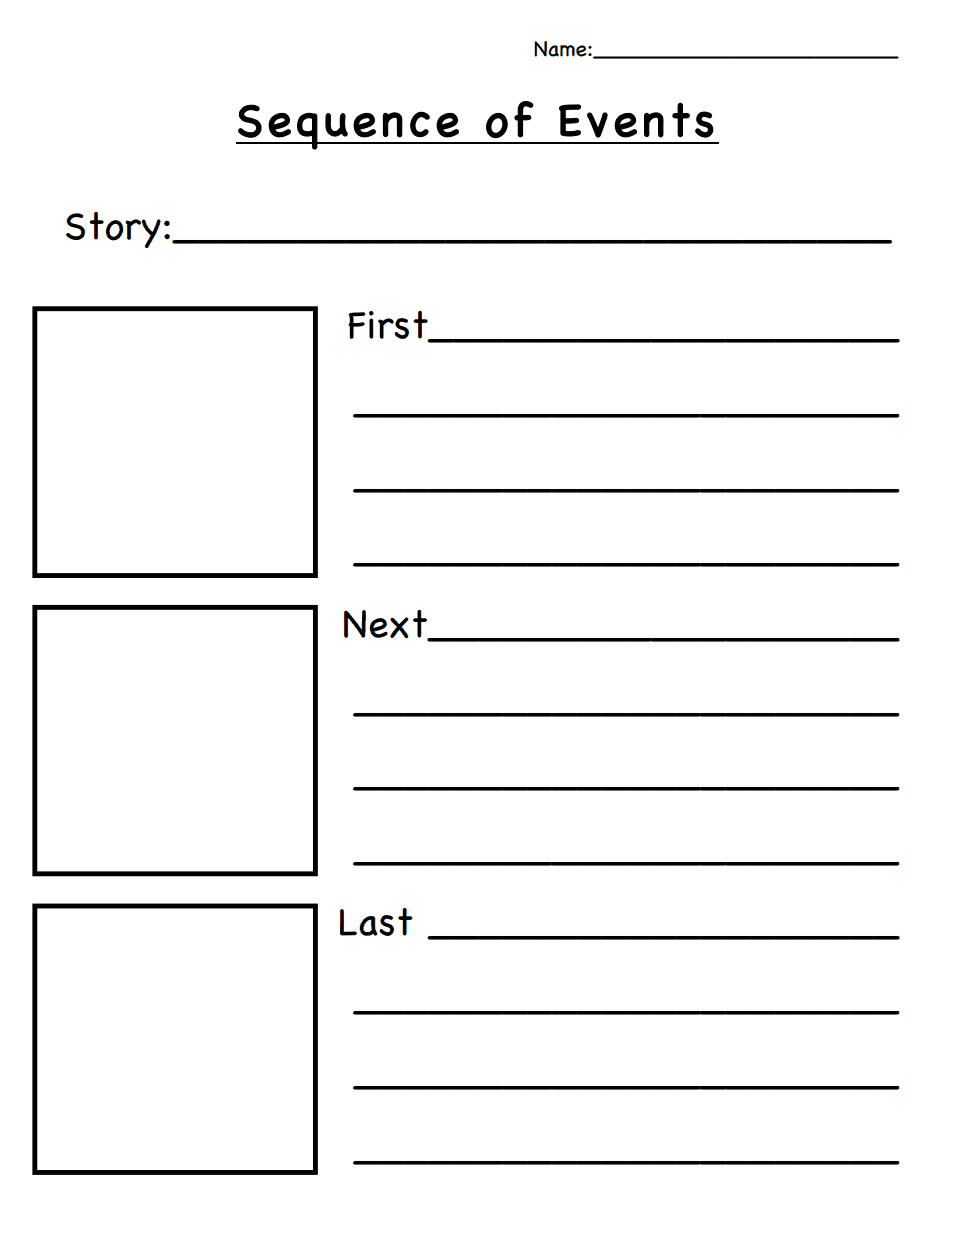 Sequence Of Events.pdf   Classroom Ideas   Story Sequencing - Free Printable Sequencing Worksheets 2Nd Grade